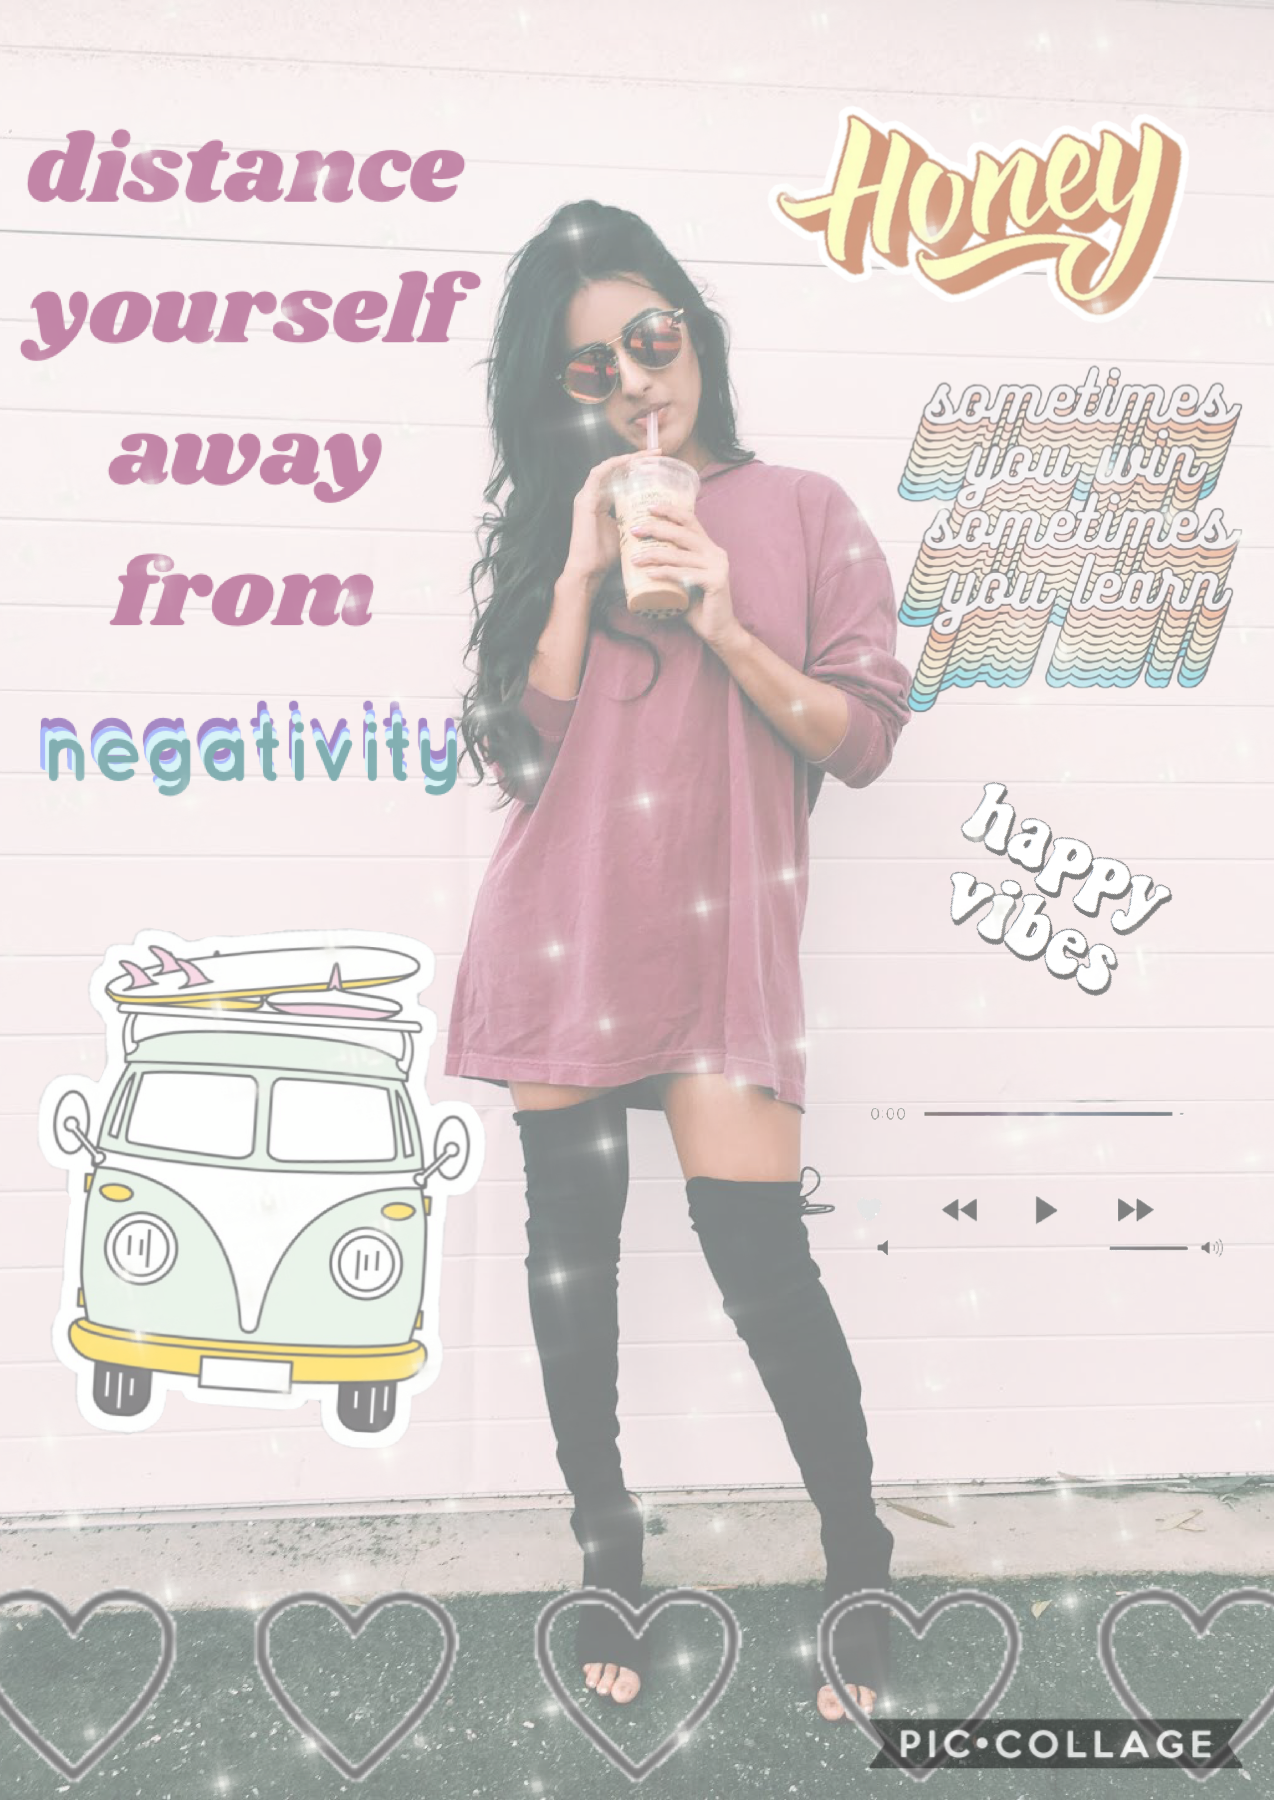 🍑tap🍑 🤍quote-distance yourself away from negativity🤍 🦋date-8-10-20🦋 🩰QOD-ballet or hip-hop dance?🩰  🍑stay peachy!🍑